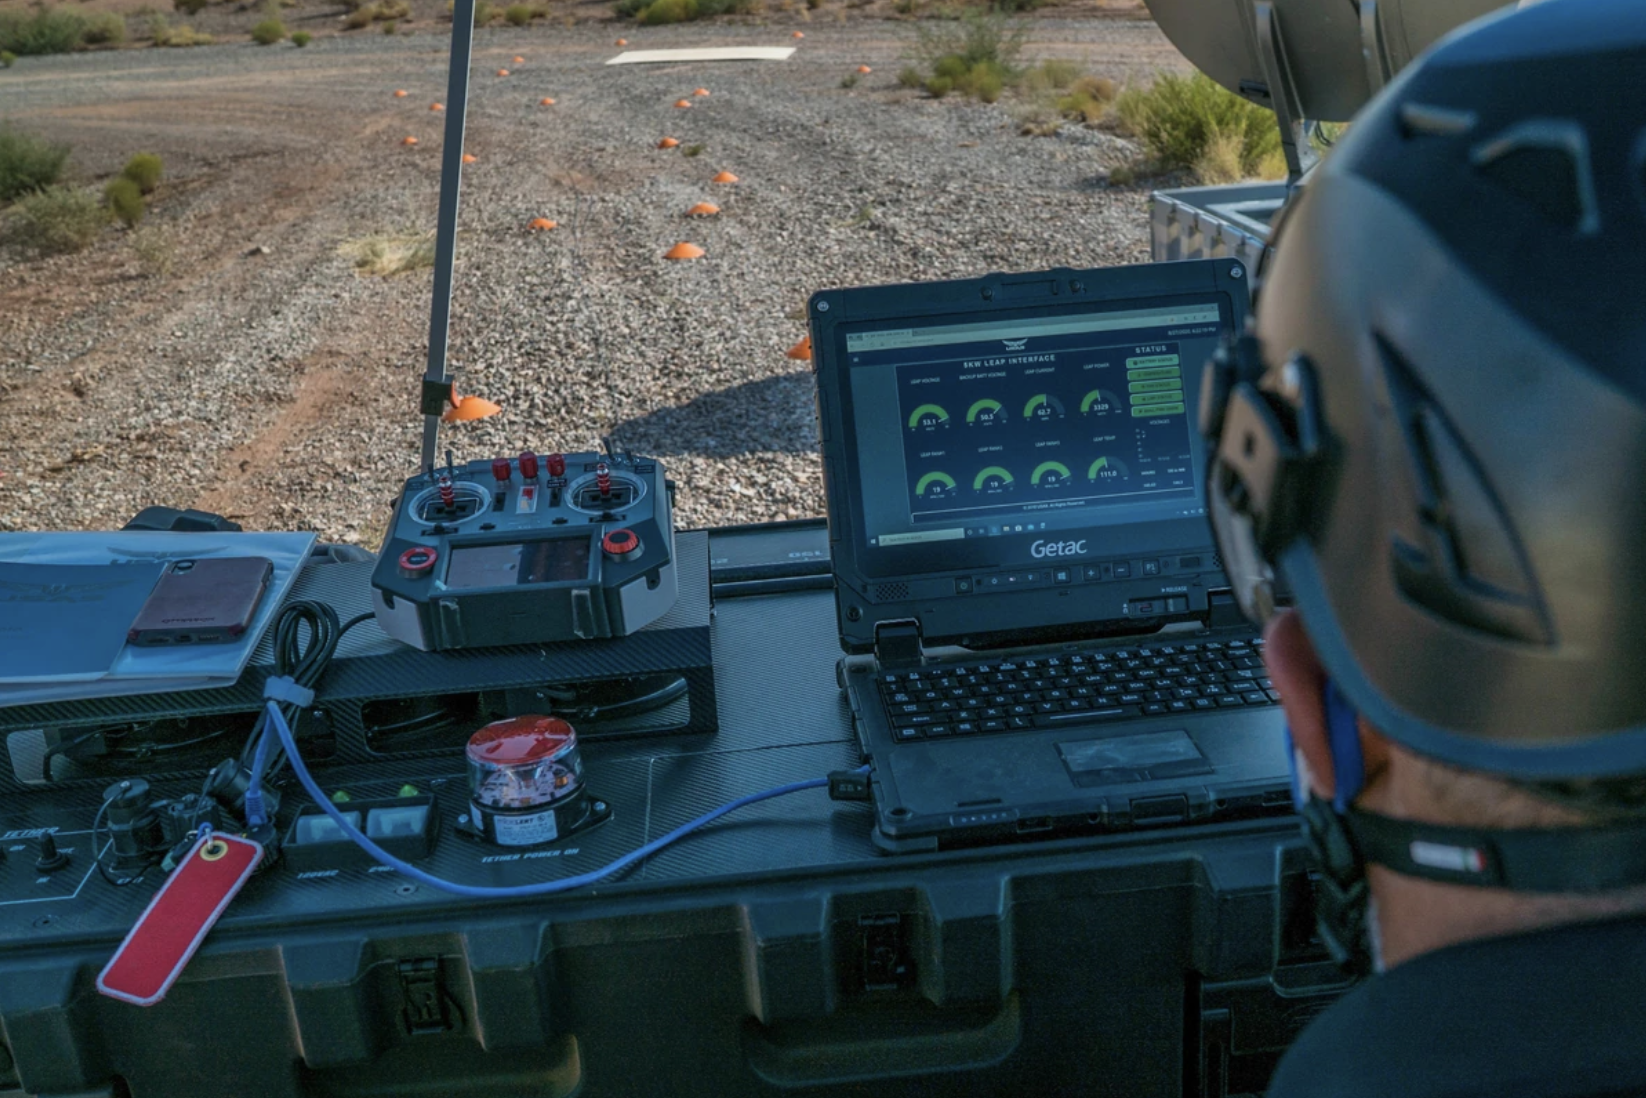 The Ability to Share Data Could Prove Key to Deterring and Defeating Adversaries